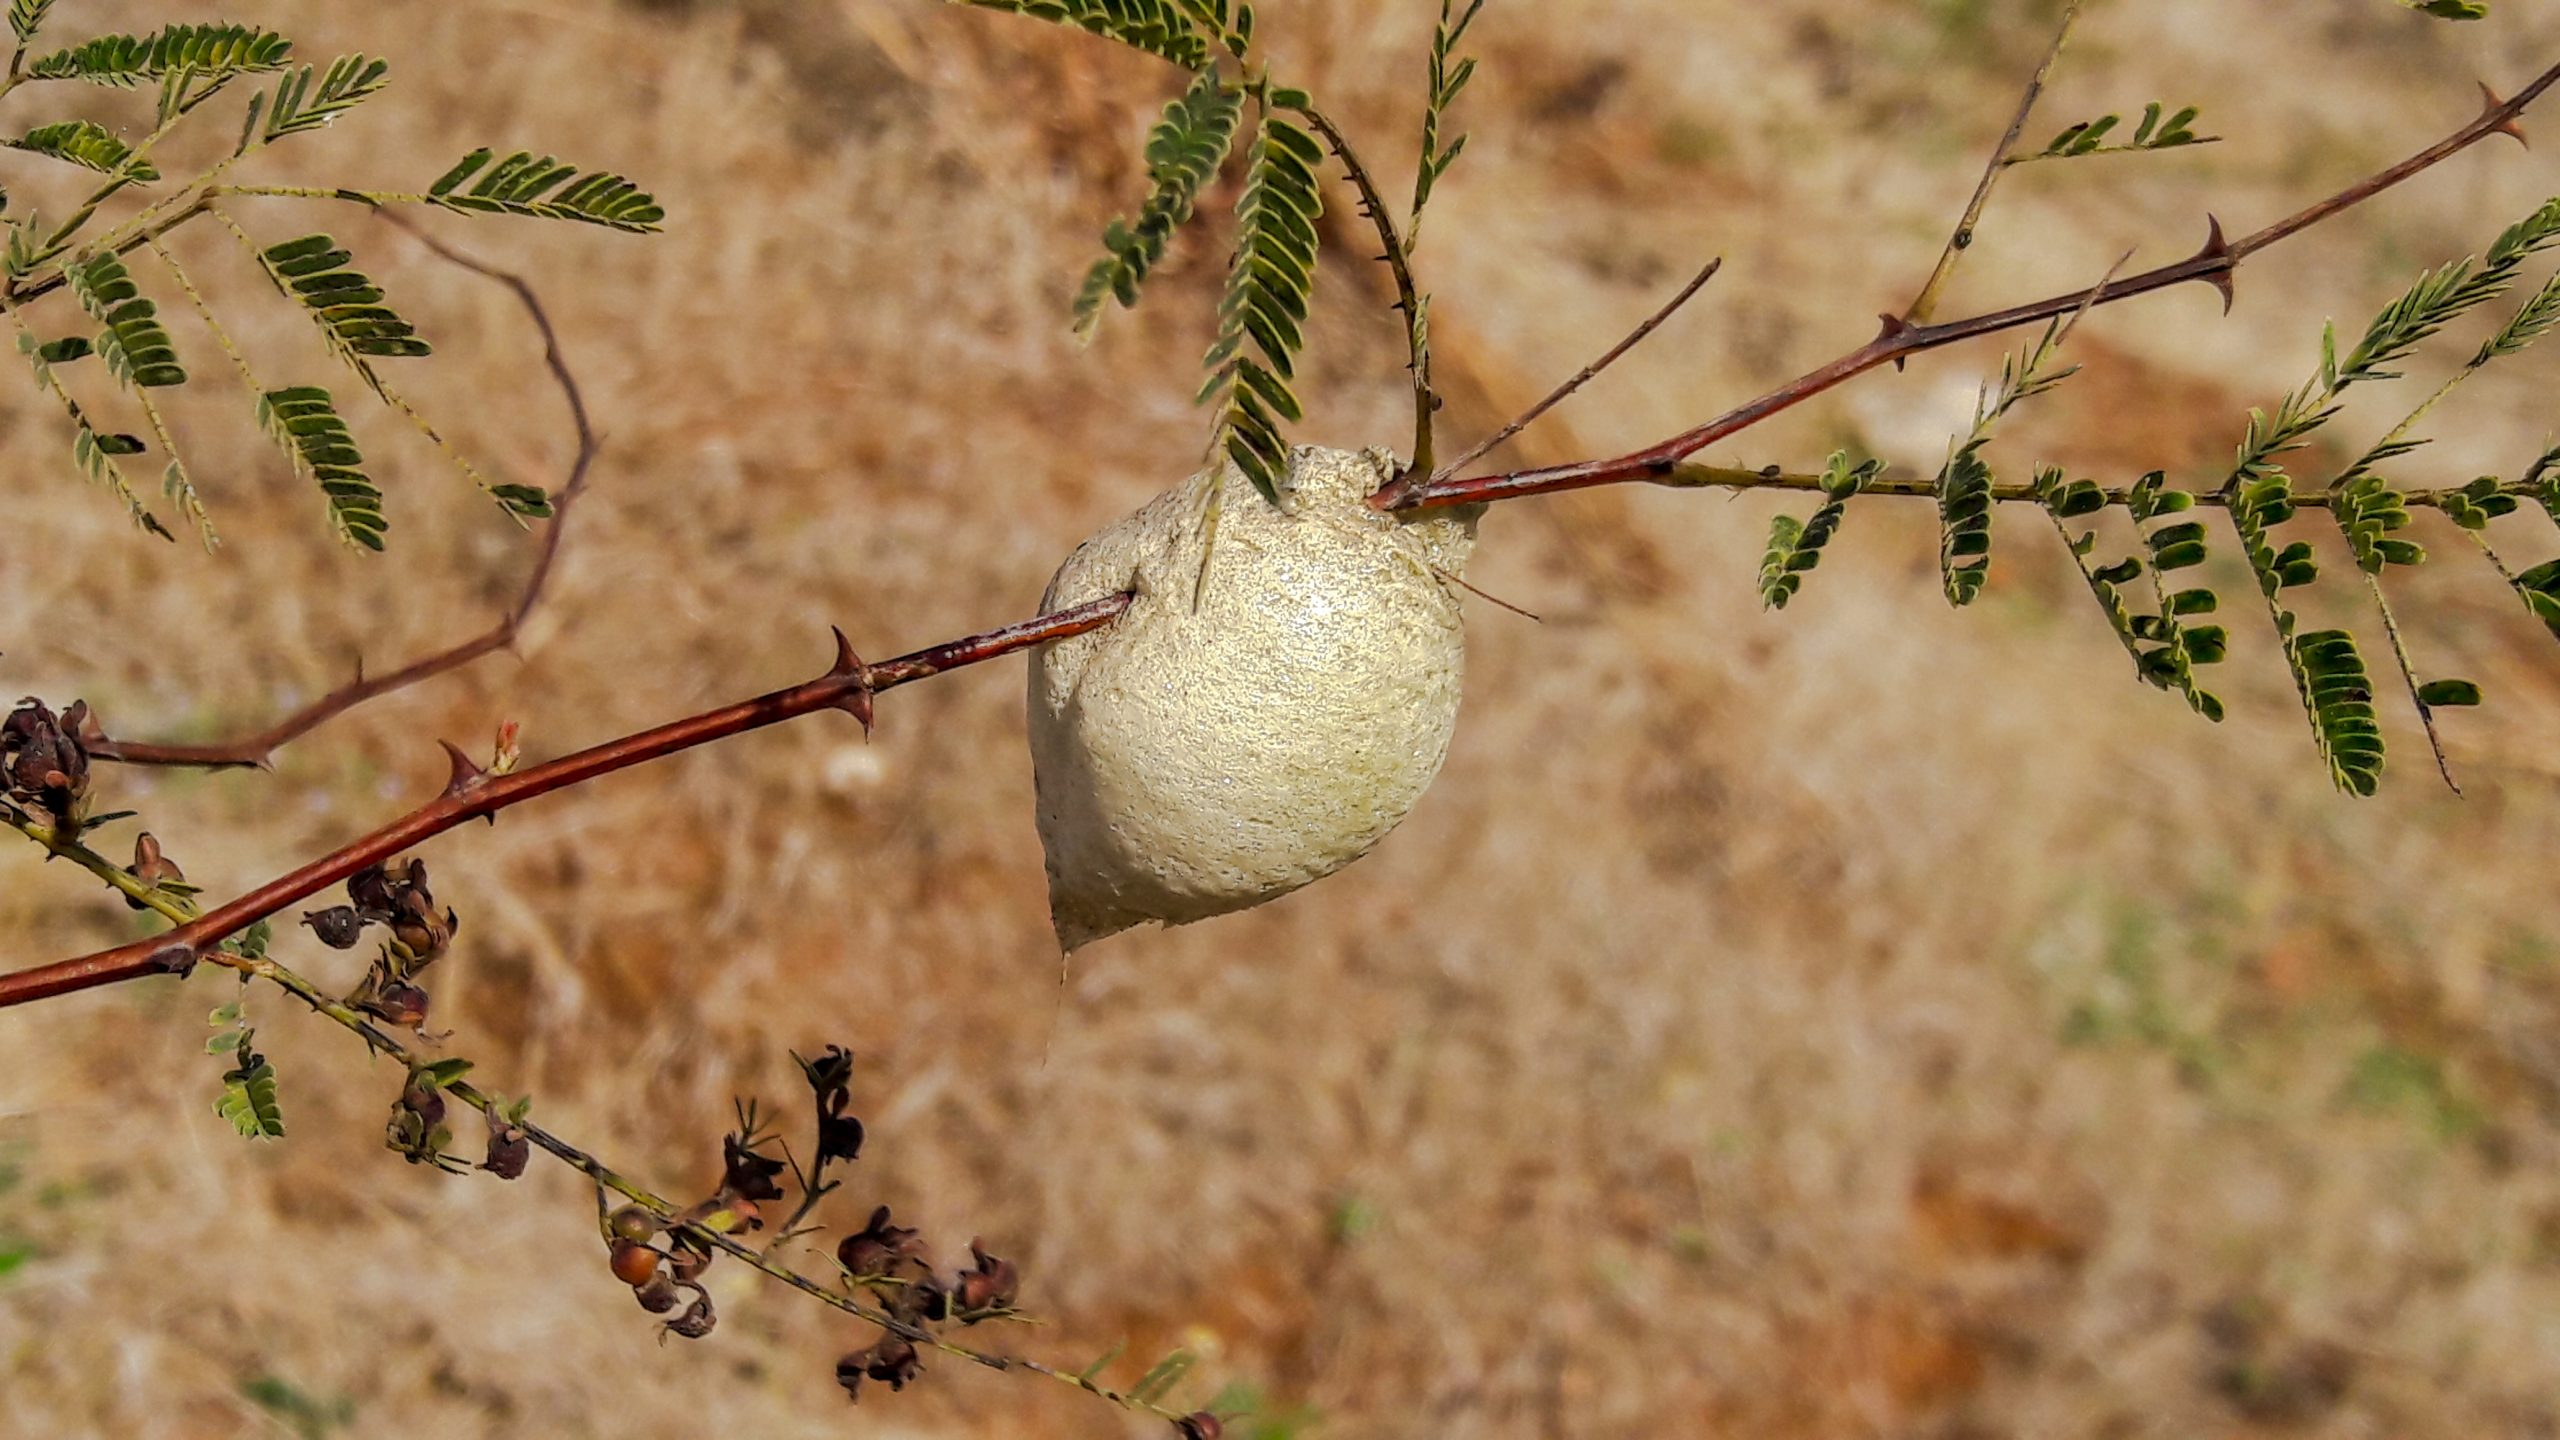 Silkworm cocoon on a plant